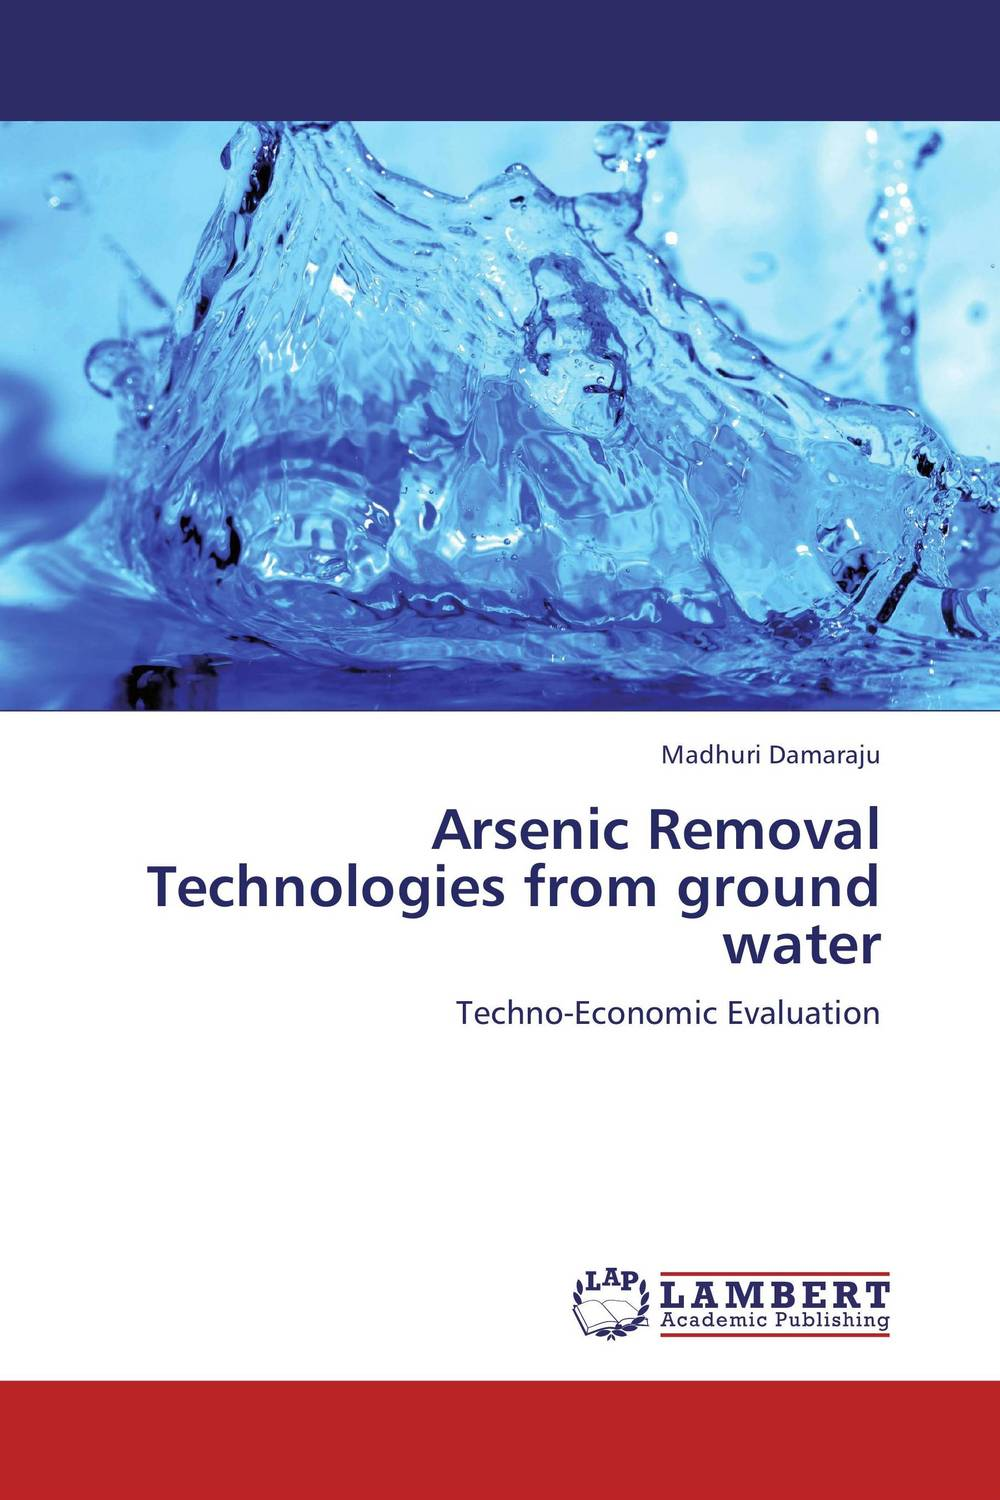 Arsenic Removal Technologies from ground water removal of ammonia arsenic and dyes from water by ozone microbubbles